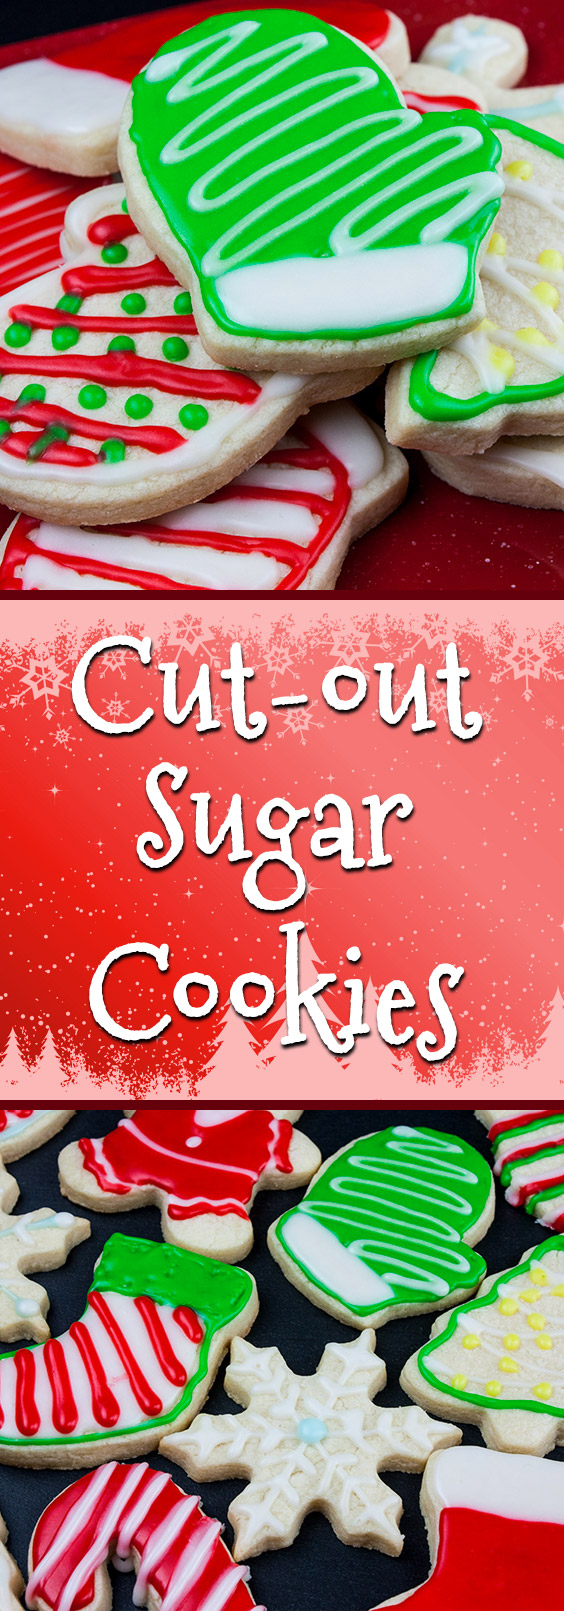 Cut-Out Sugar Cookies - The perfect tender, buttery, no spread cookie.  #cookies #christmas #sweets #holidays